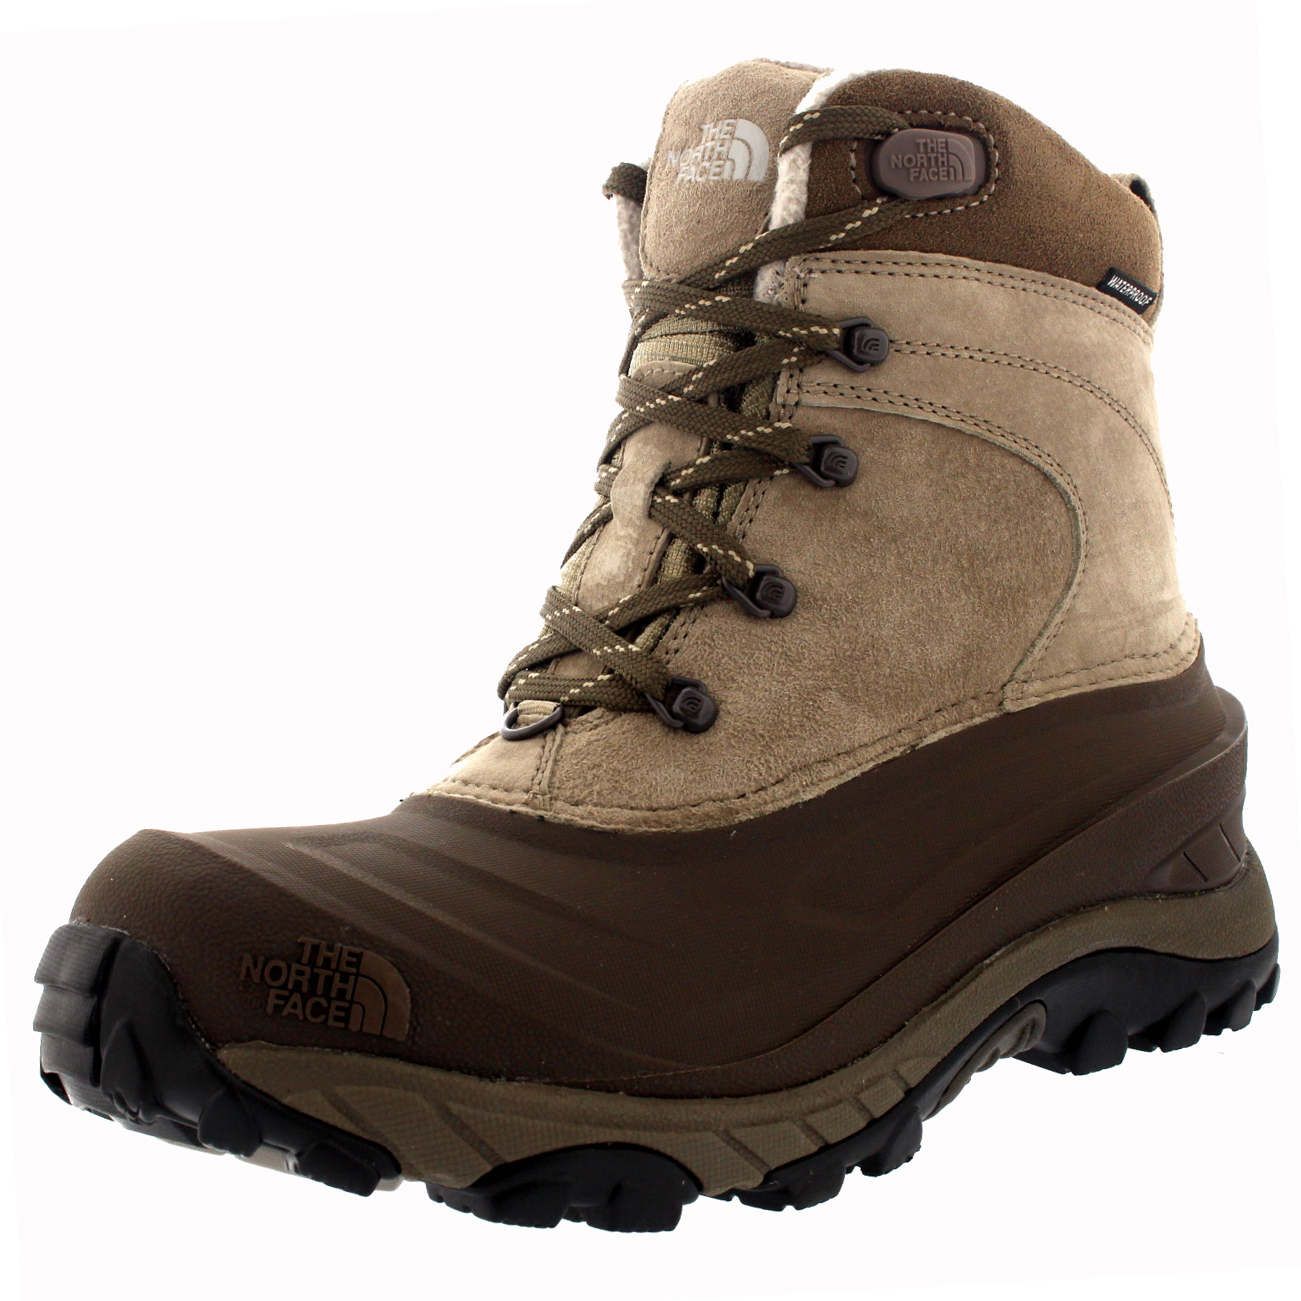 Mens The North Face Chilkat II Outdoor Waterproof Thermal Ankle Boots